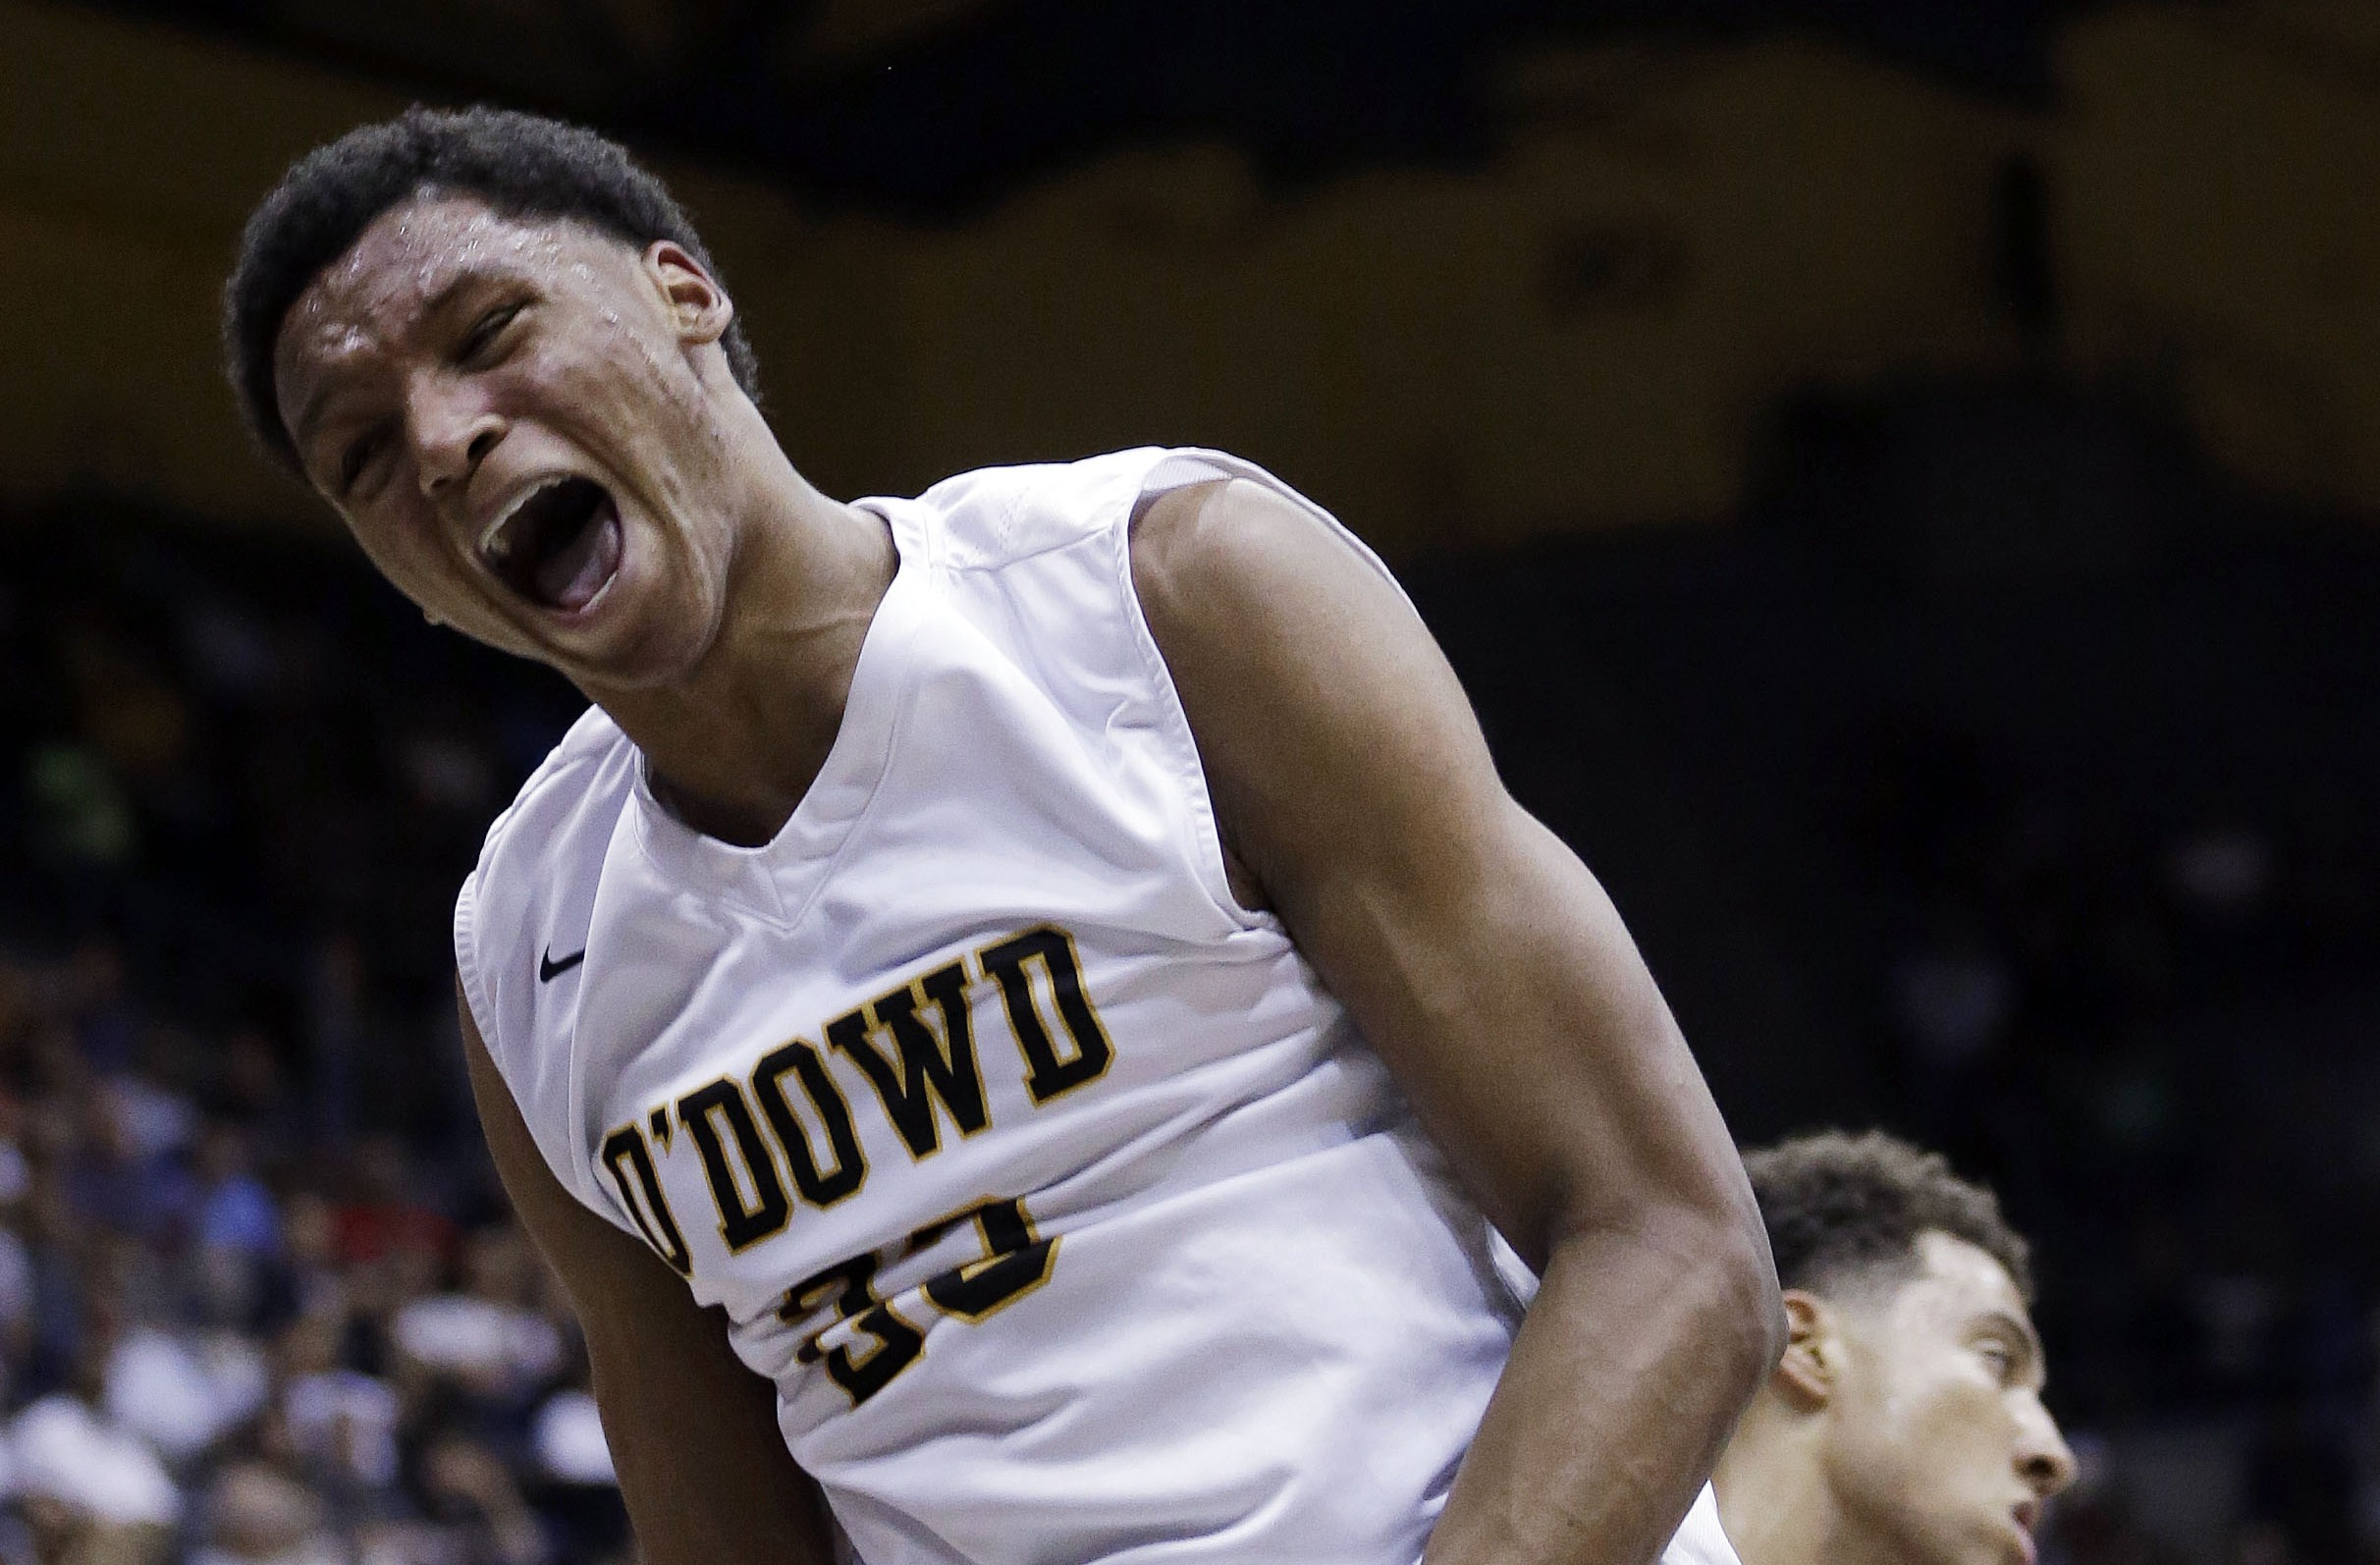 Ivan Rabb celebrates after a dunk in the CIF Oopen Division final. Photo: Associated Press